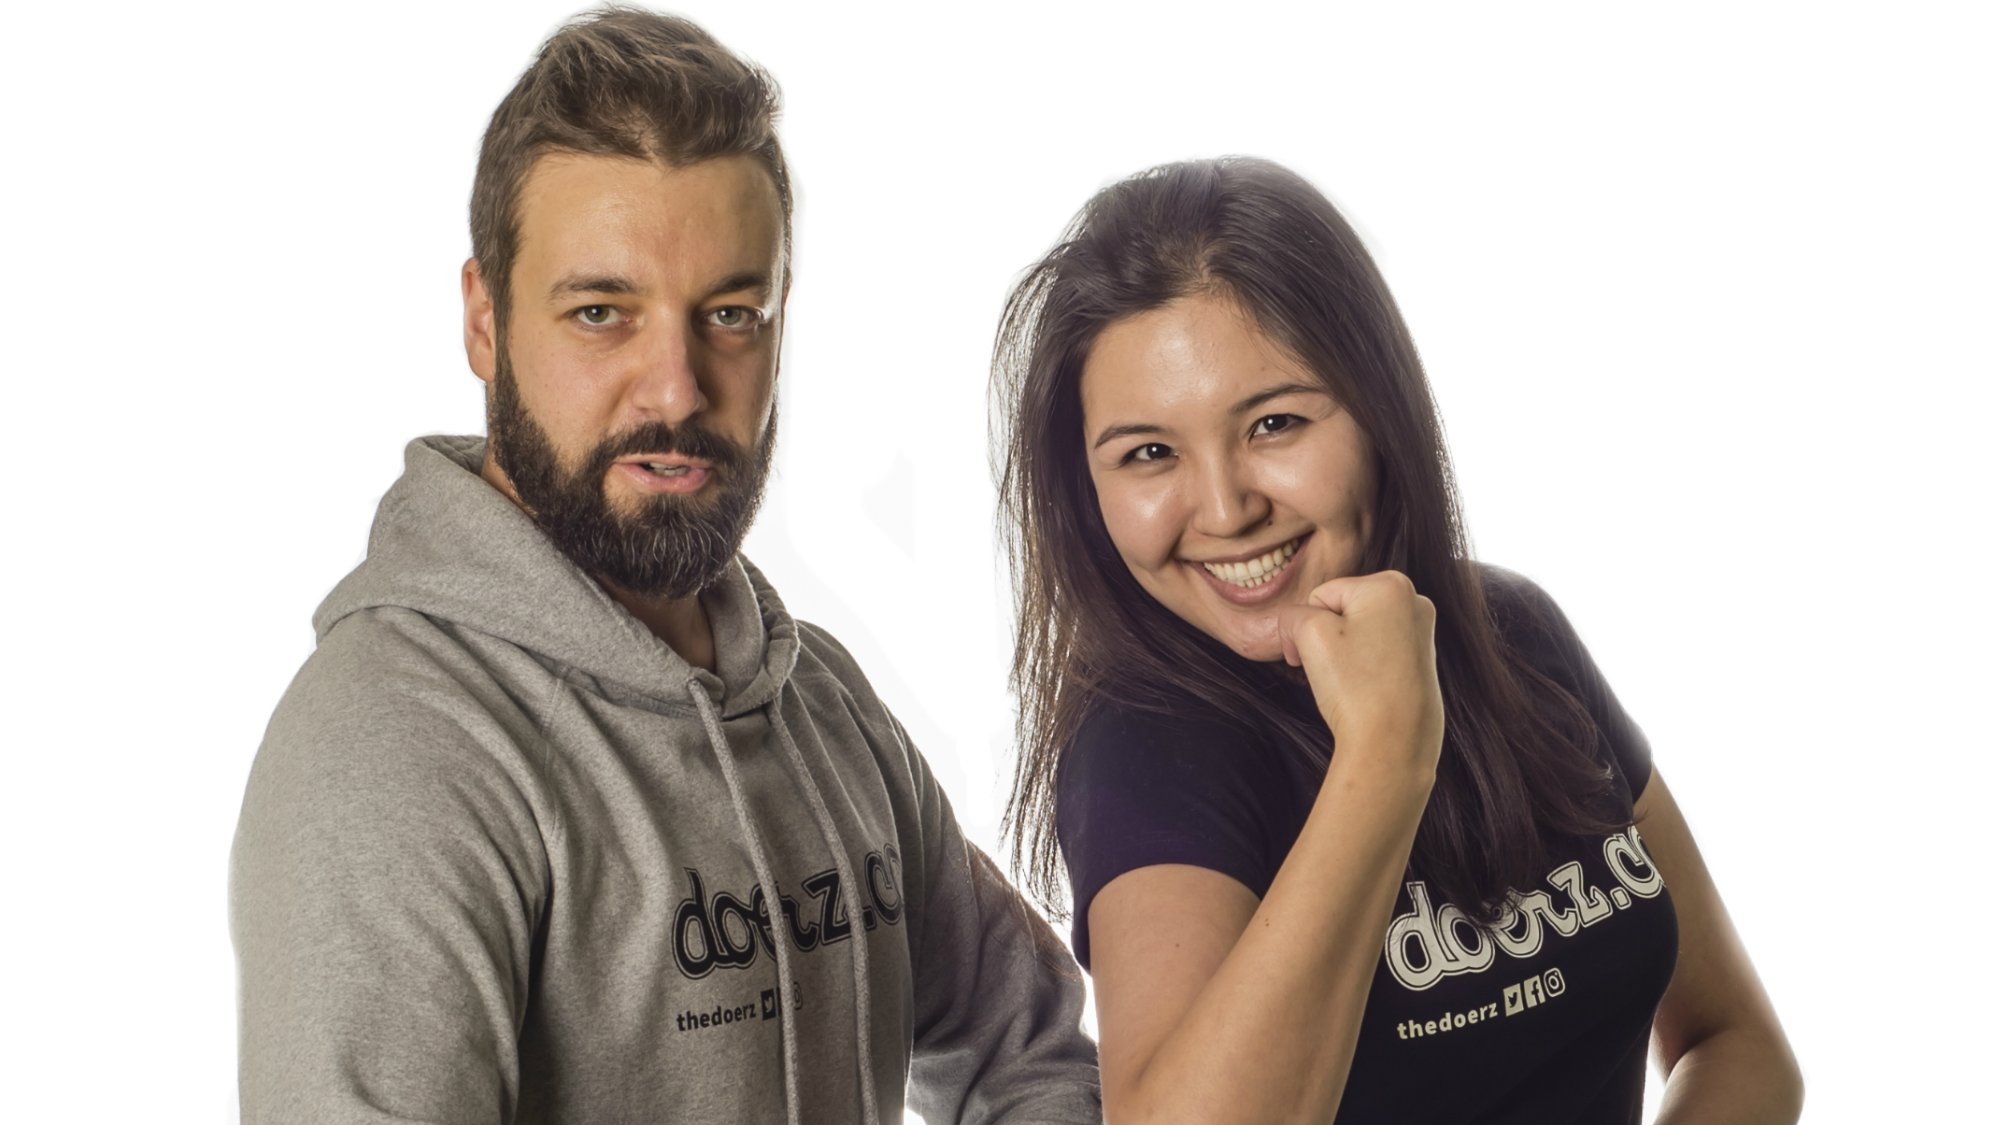 Doerz has a two-member team, as Aliia Kodzhoshalieva joined the company as a co-founder last year. There's room for a third, preferably tech-oriented person.